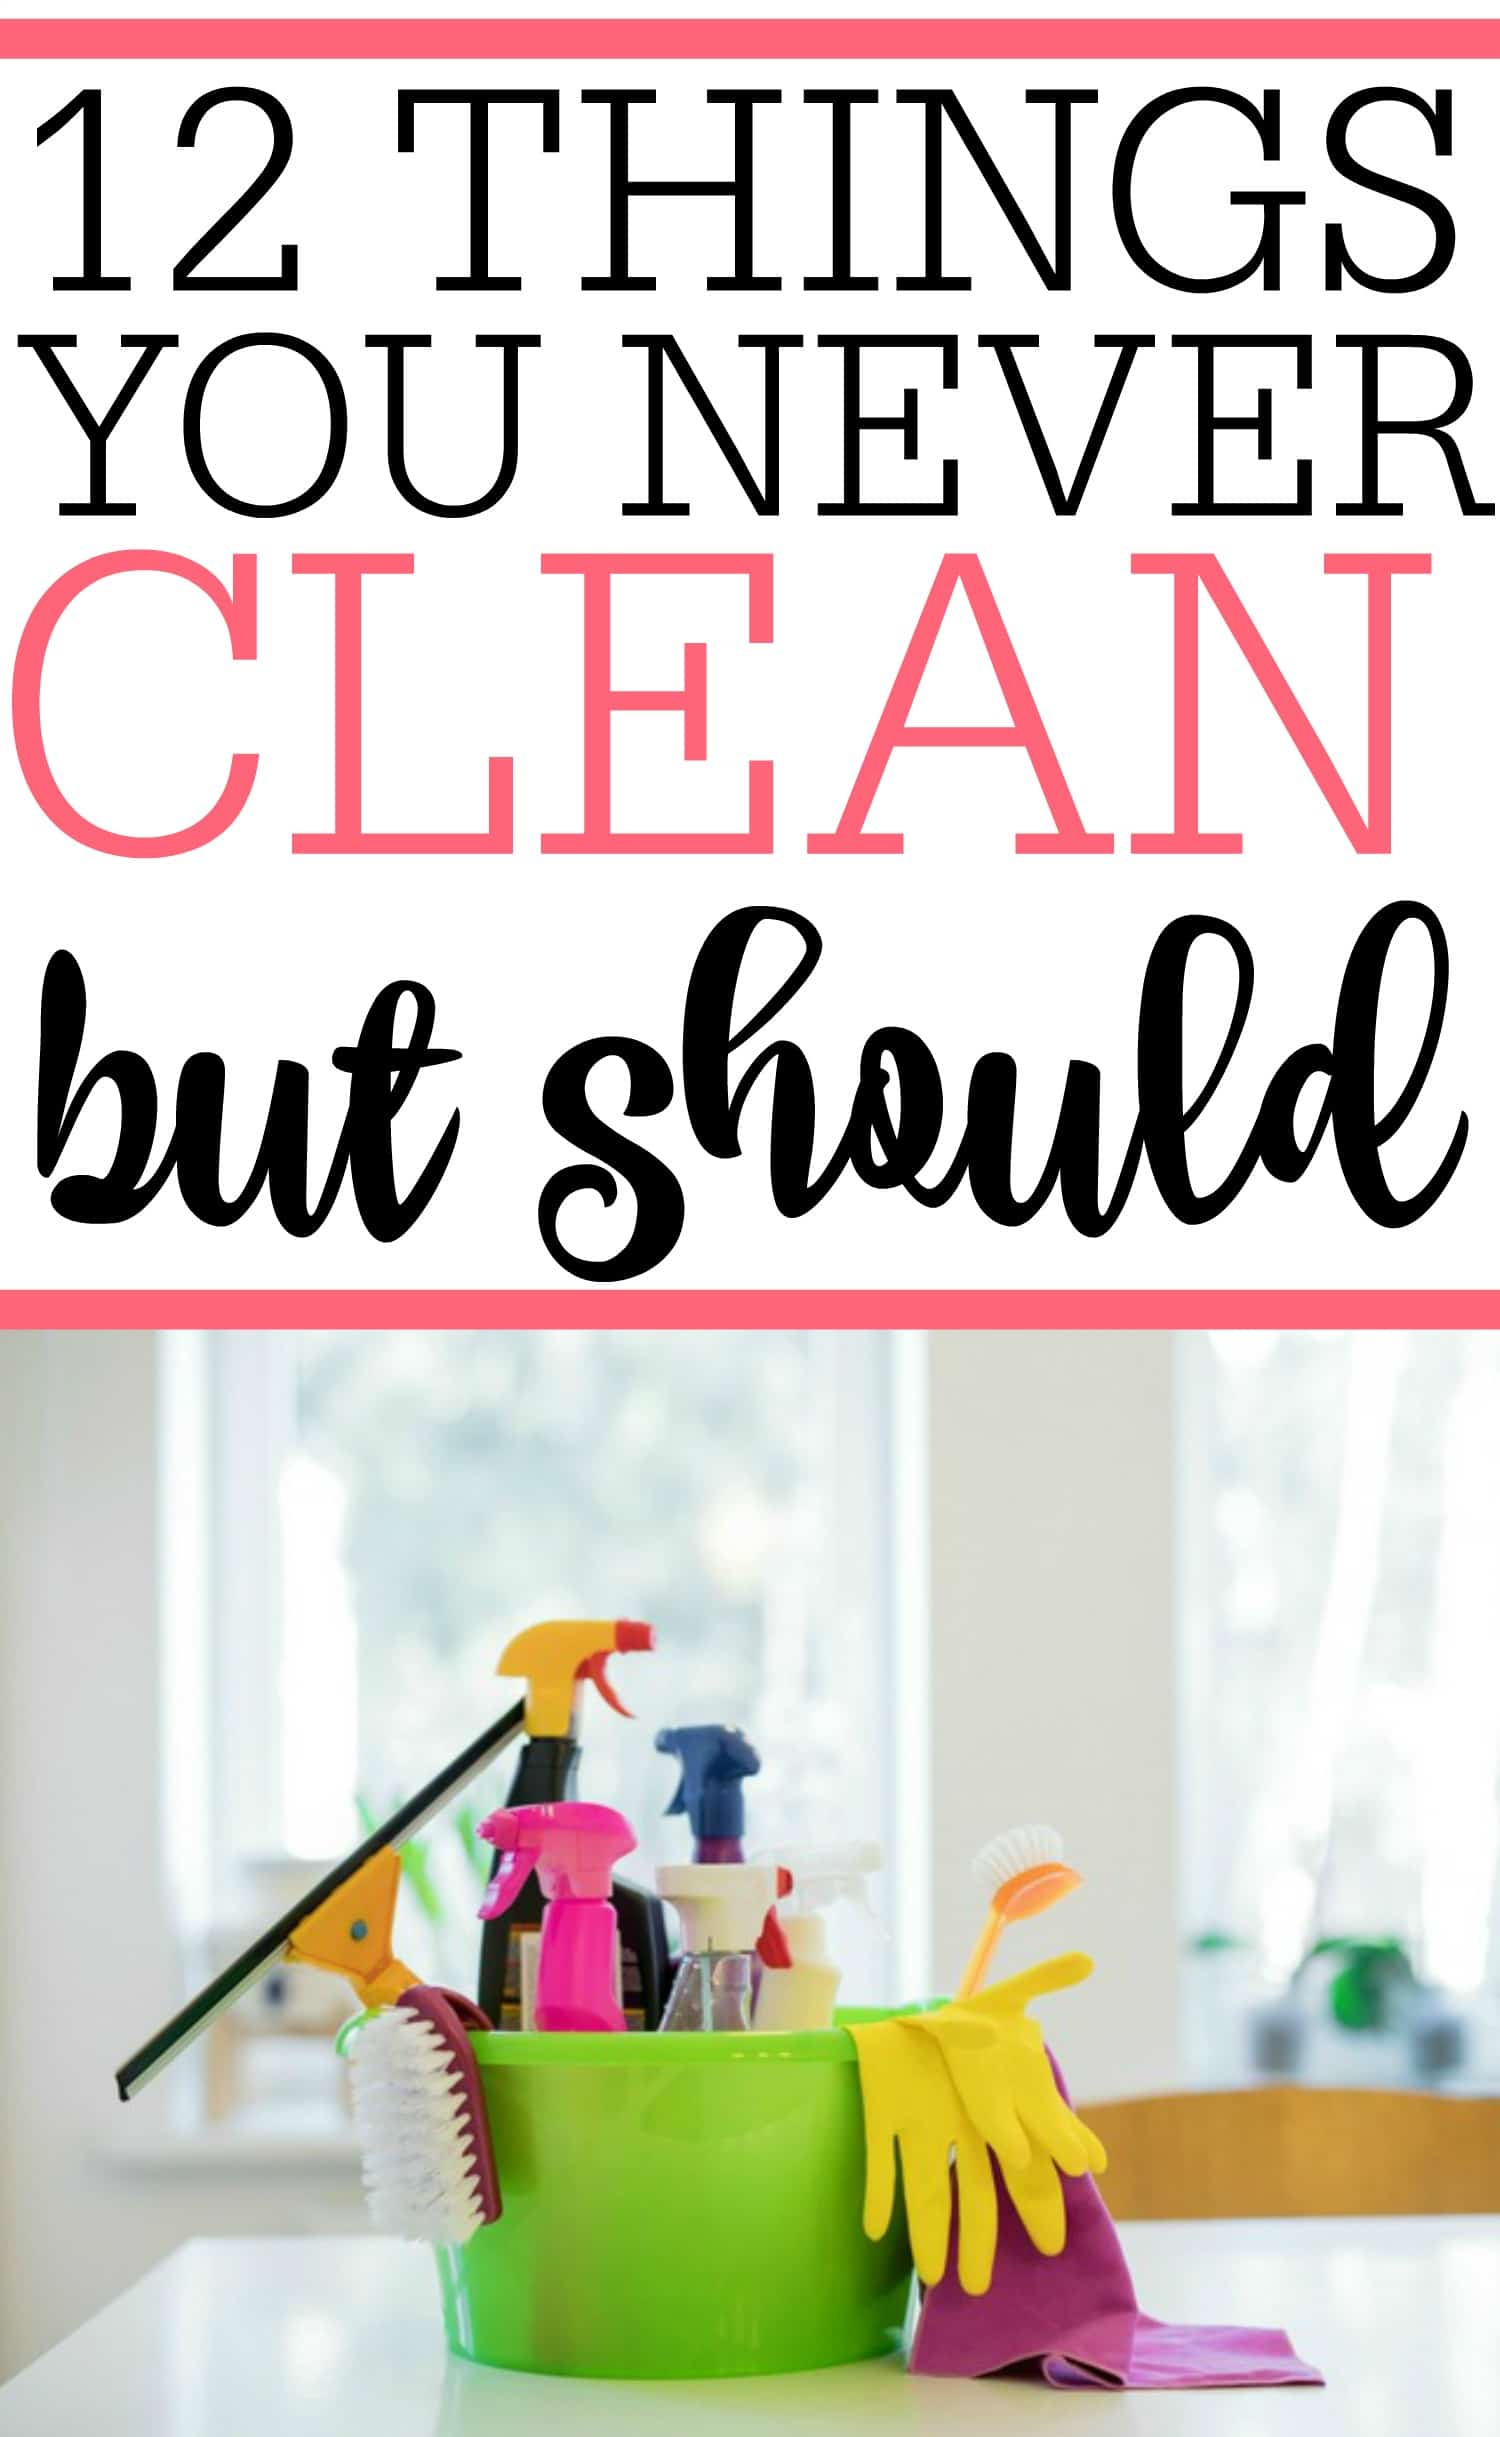 Our homes can be a breeding ground for bacteria and germs. Check out these 12 things you never clean but should. Prevent illness and keep your home safe by cleaning these items.